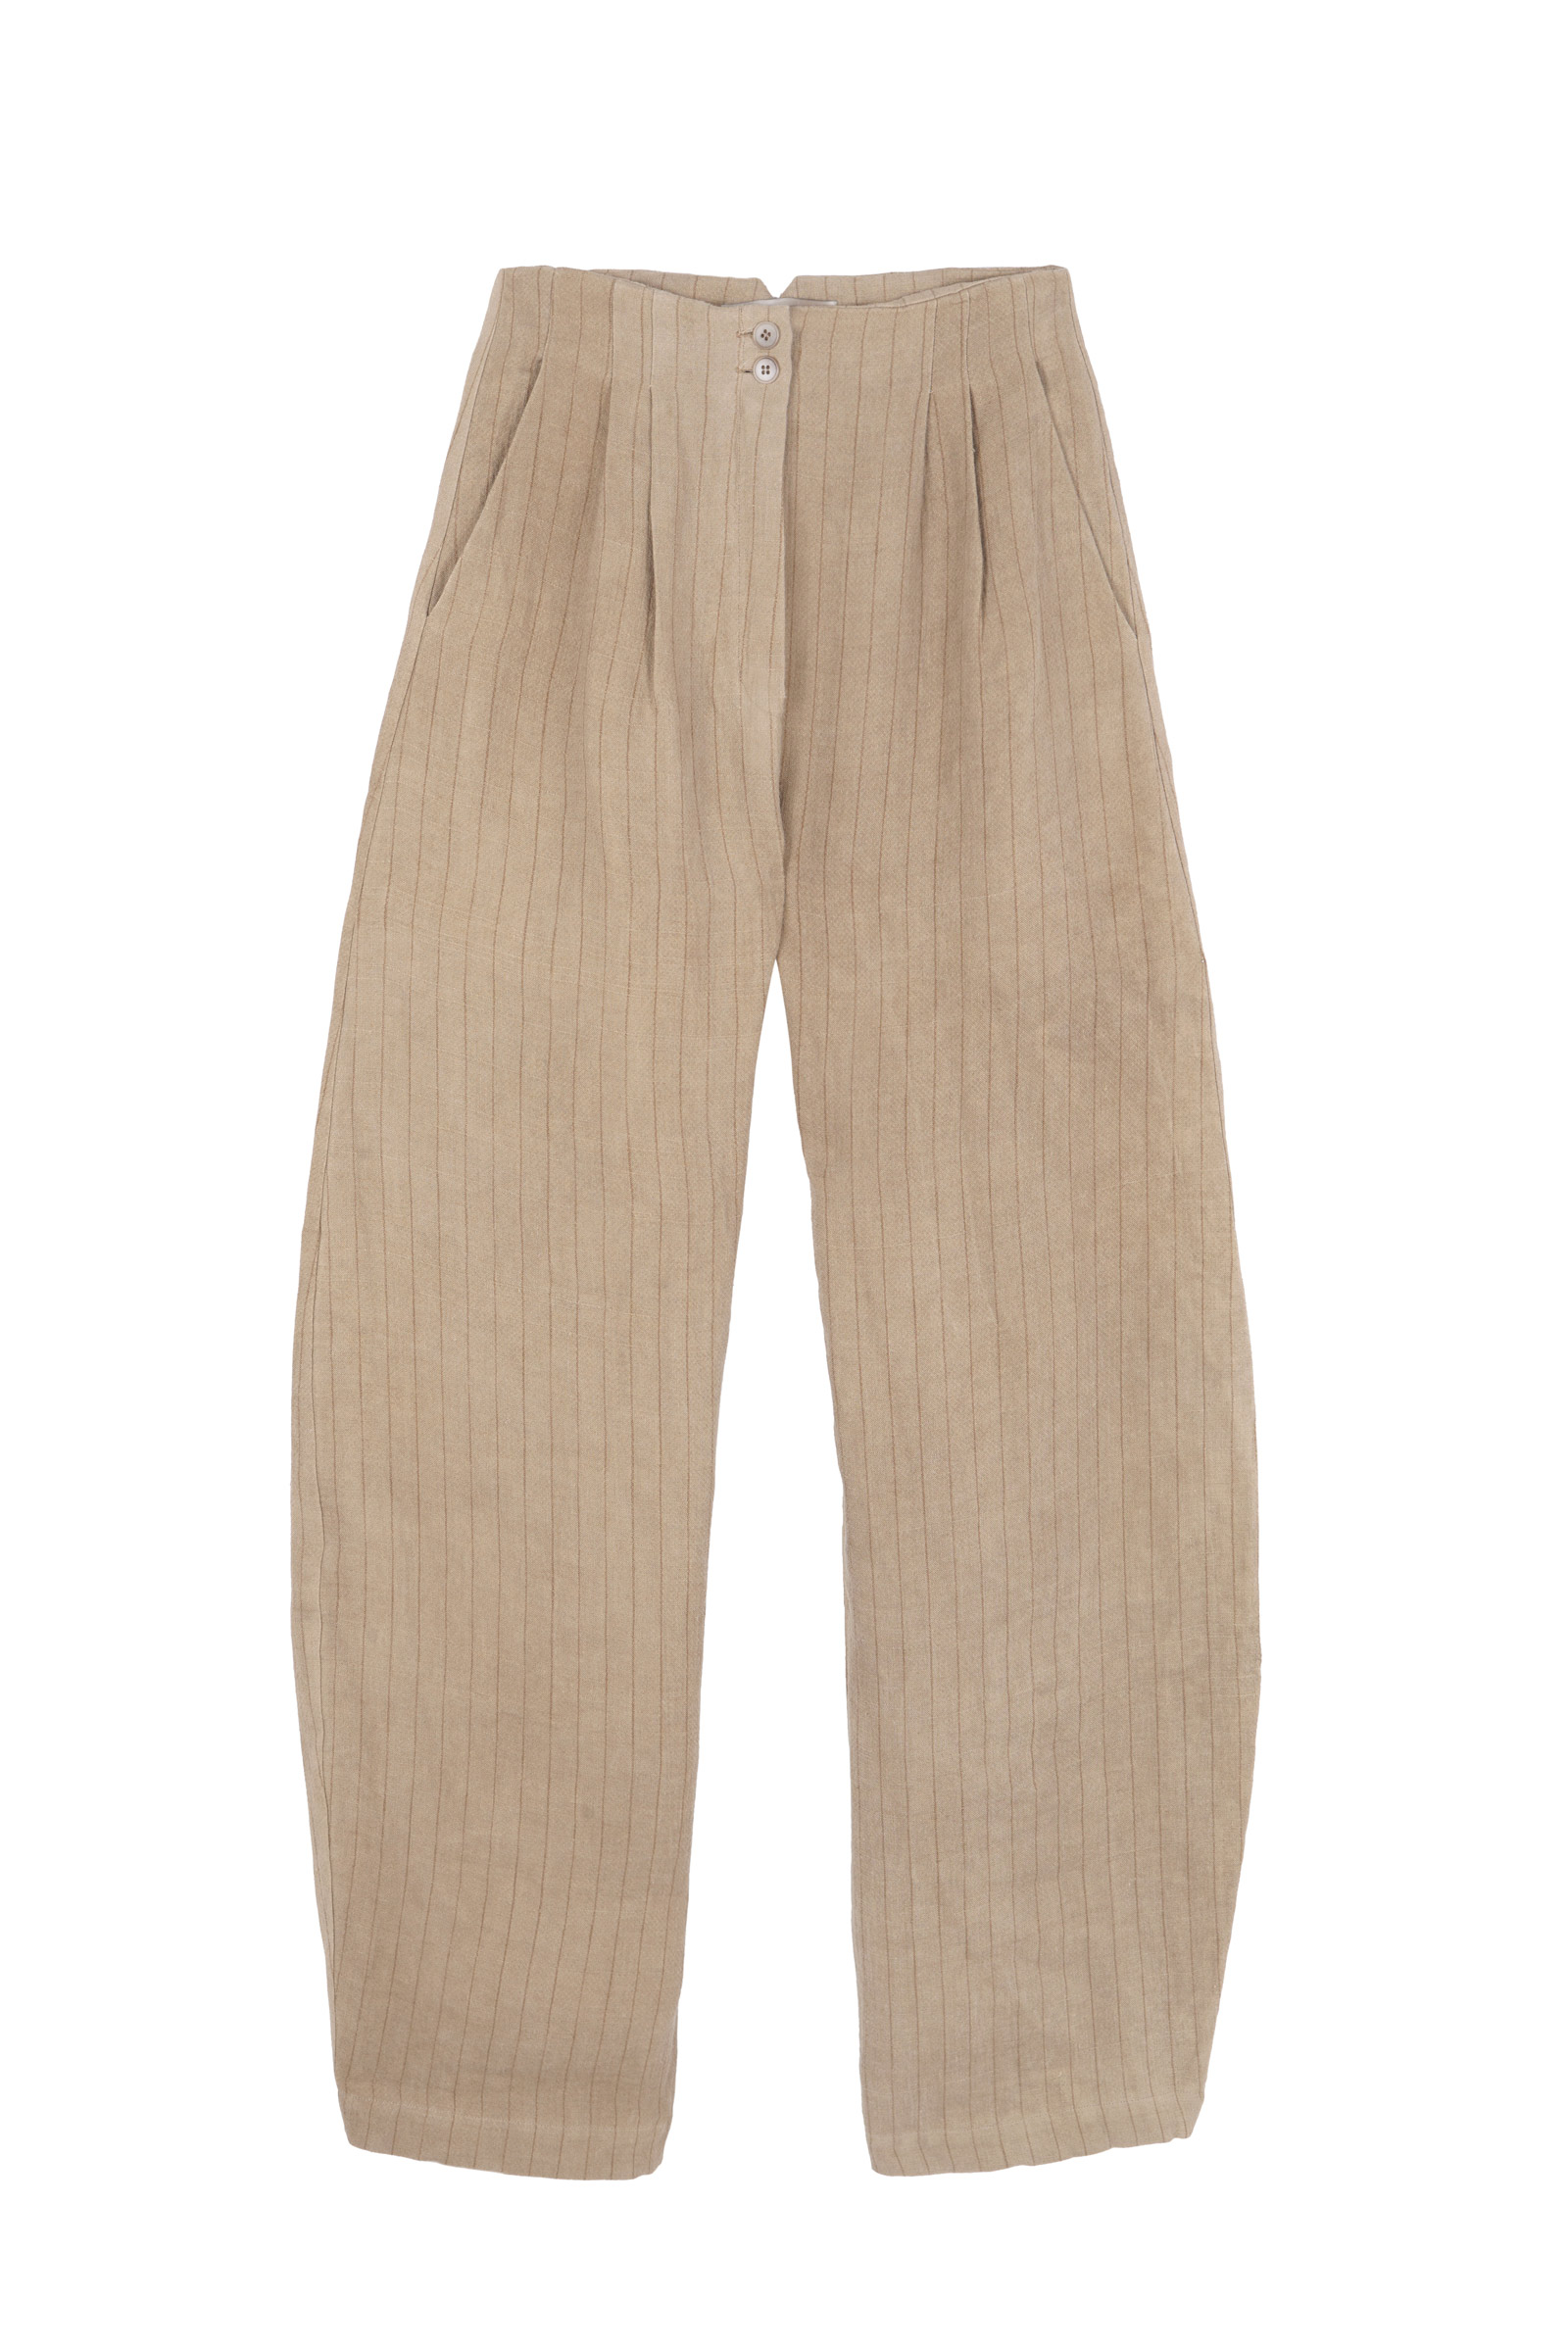 PAJA, STRIPED LINEN PANTS - Cortana Moda